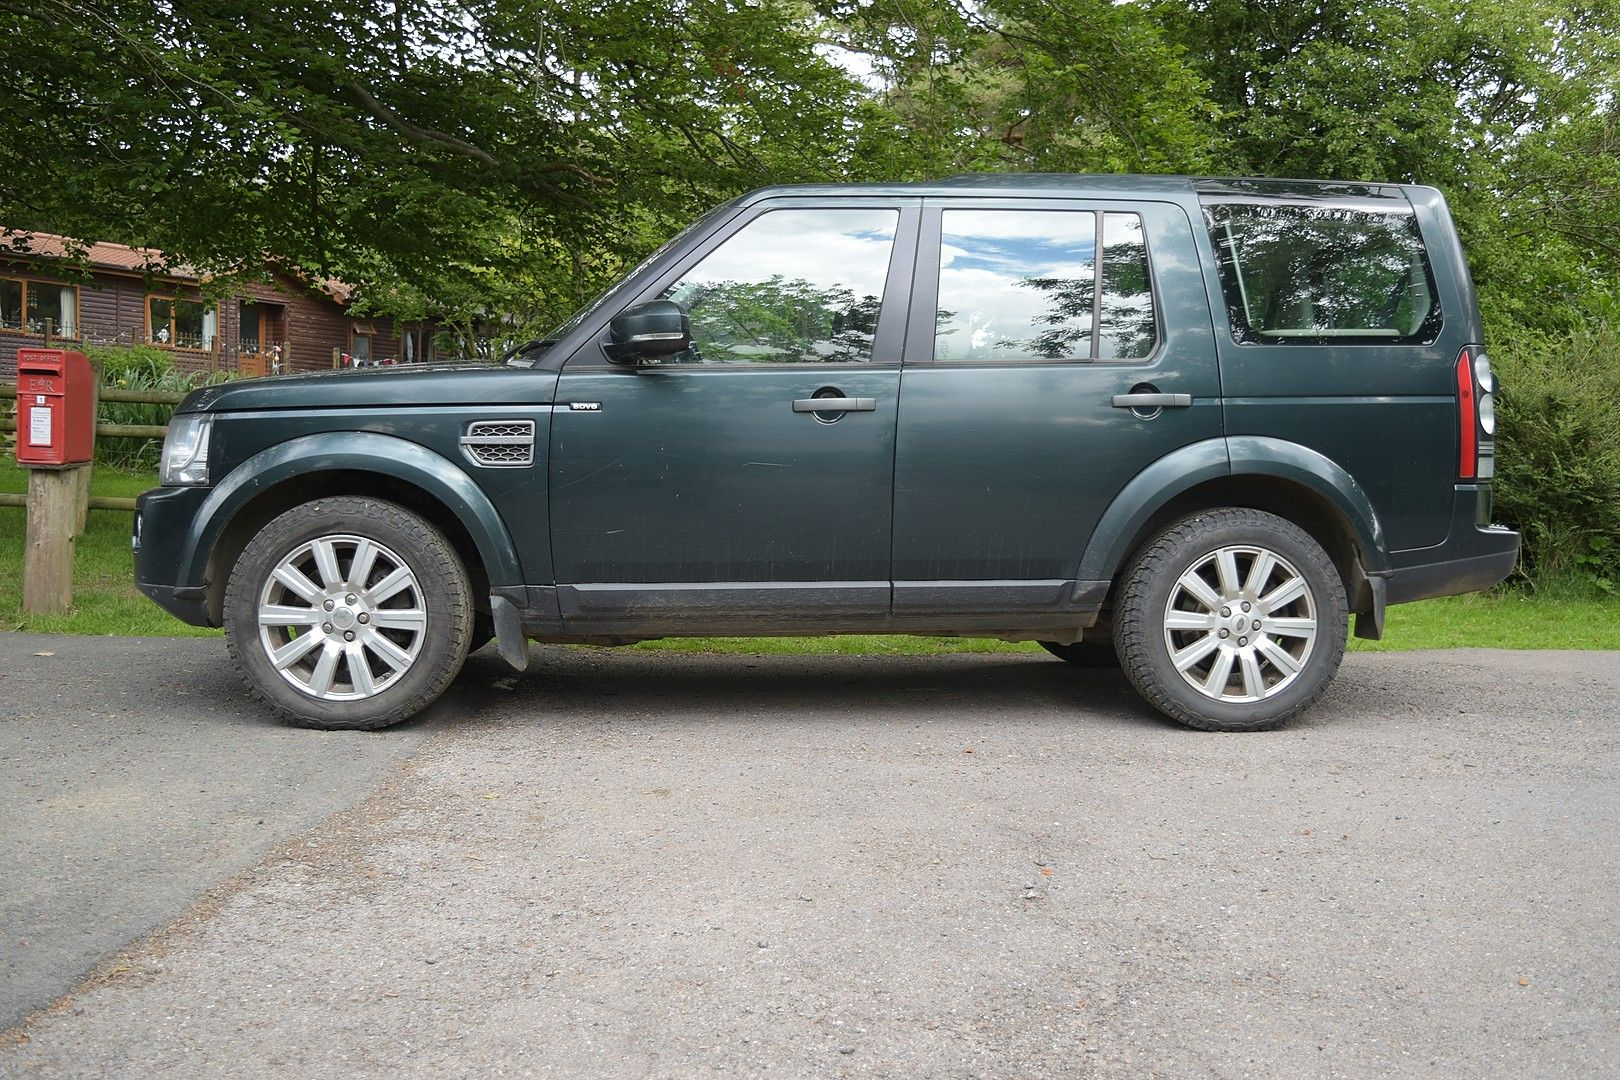 LAND ROVER Discovery 3.0 SDV6 GS - Thumbnail 8